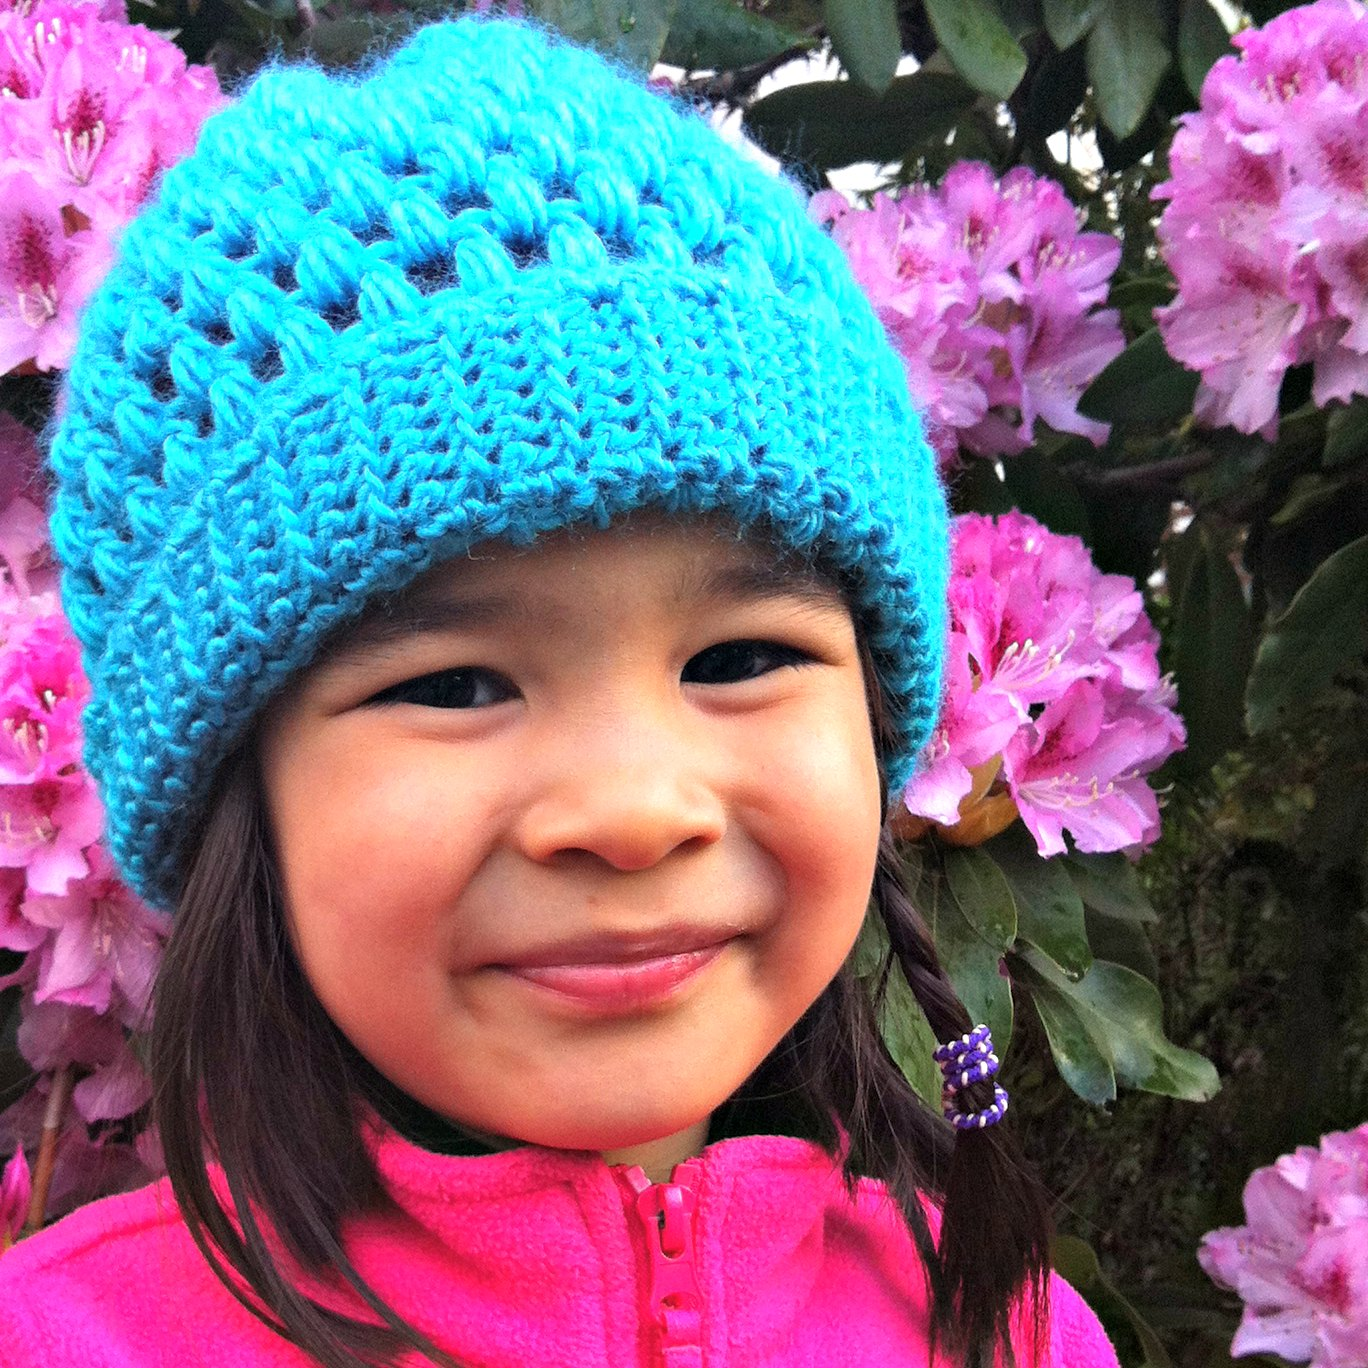 sew creative crocheted kids slouch hat pattern great for beginners hello creative family. Black Bedroom Furniture Sets. Home Design Ideas